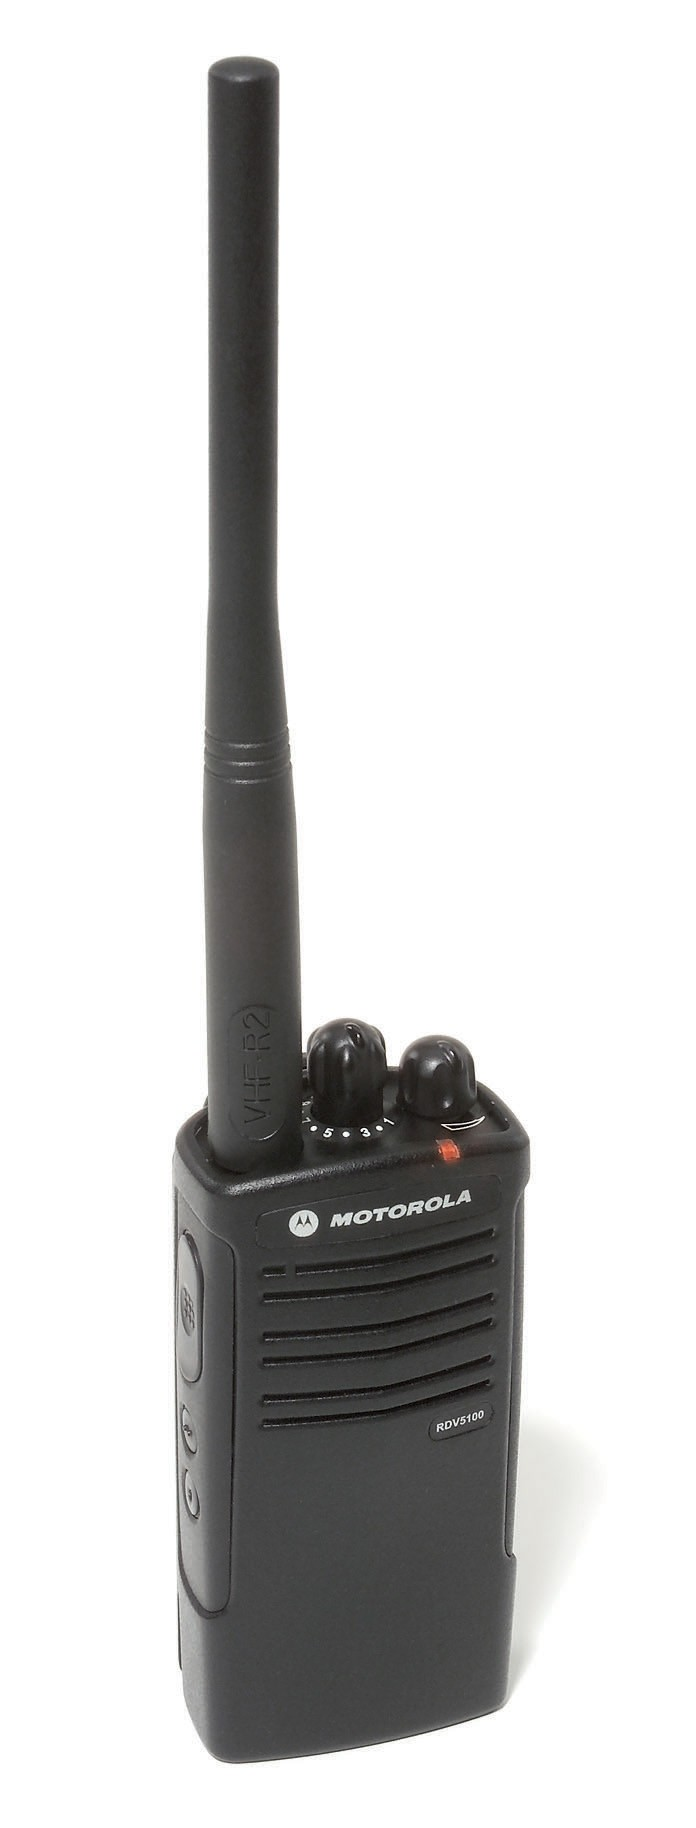 motorola rdv5100 price vhf portable radio. Black Bedroom Furniture Sets. Home Design Ideas